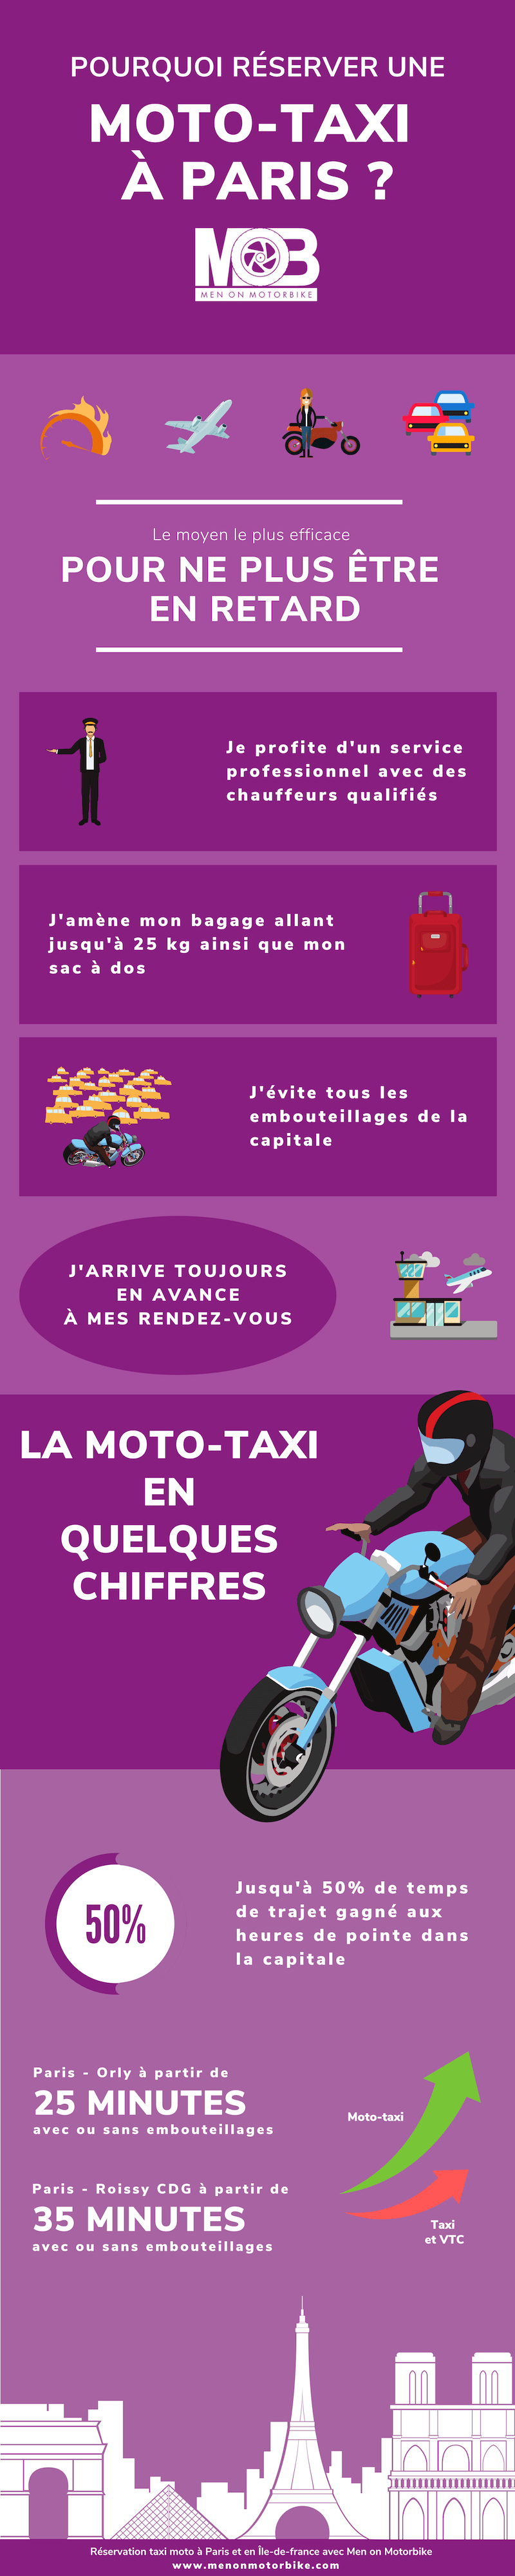 Why book a motorcycle taxi in Paris